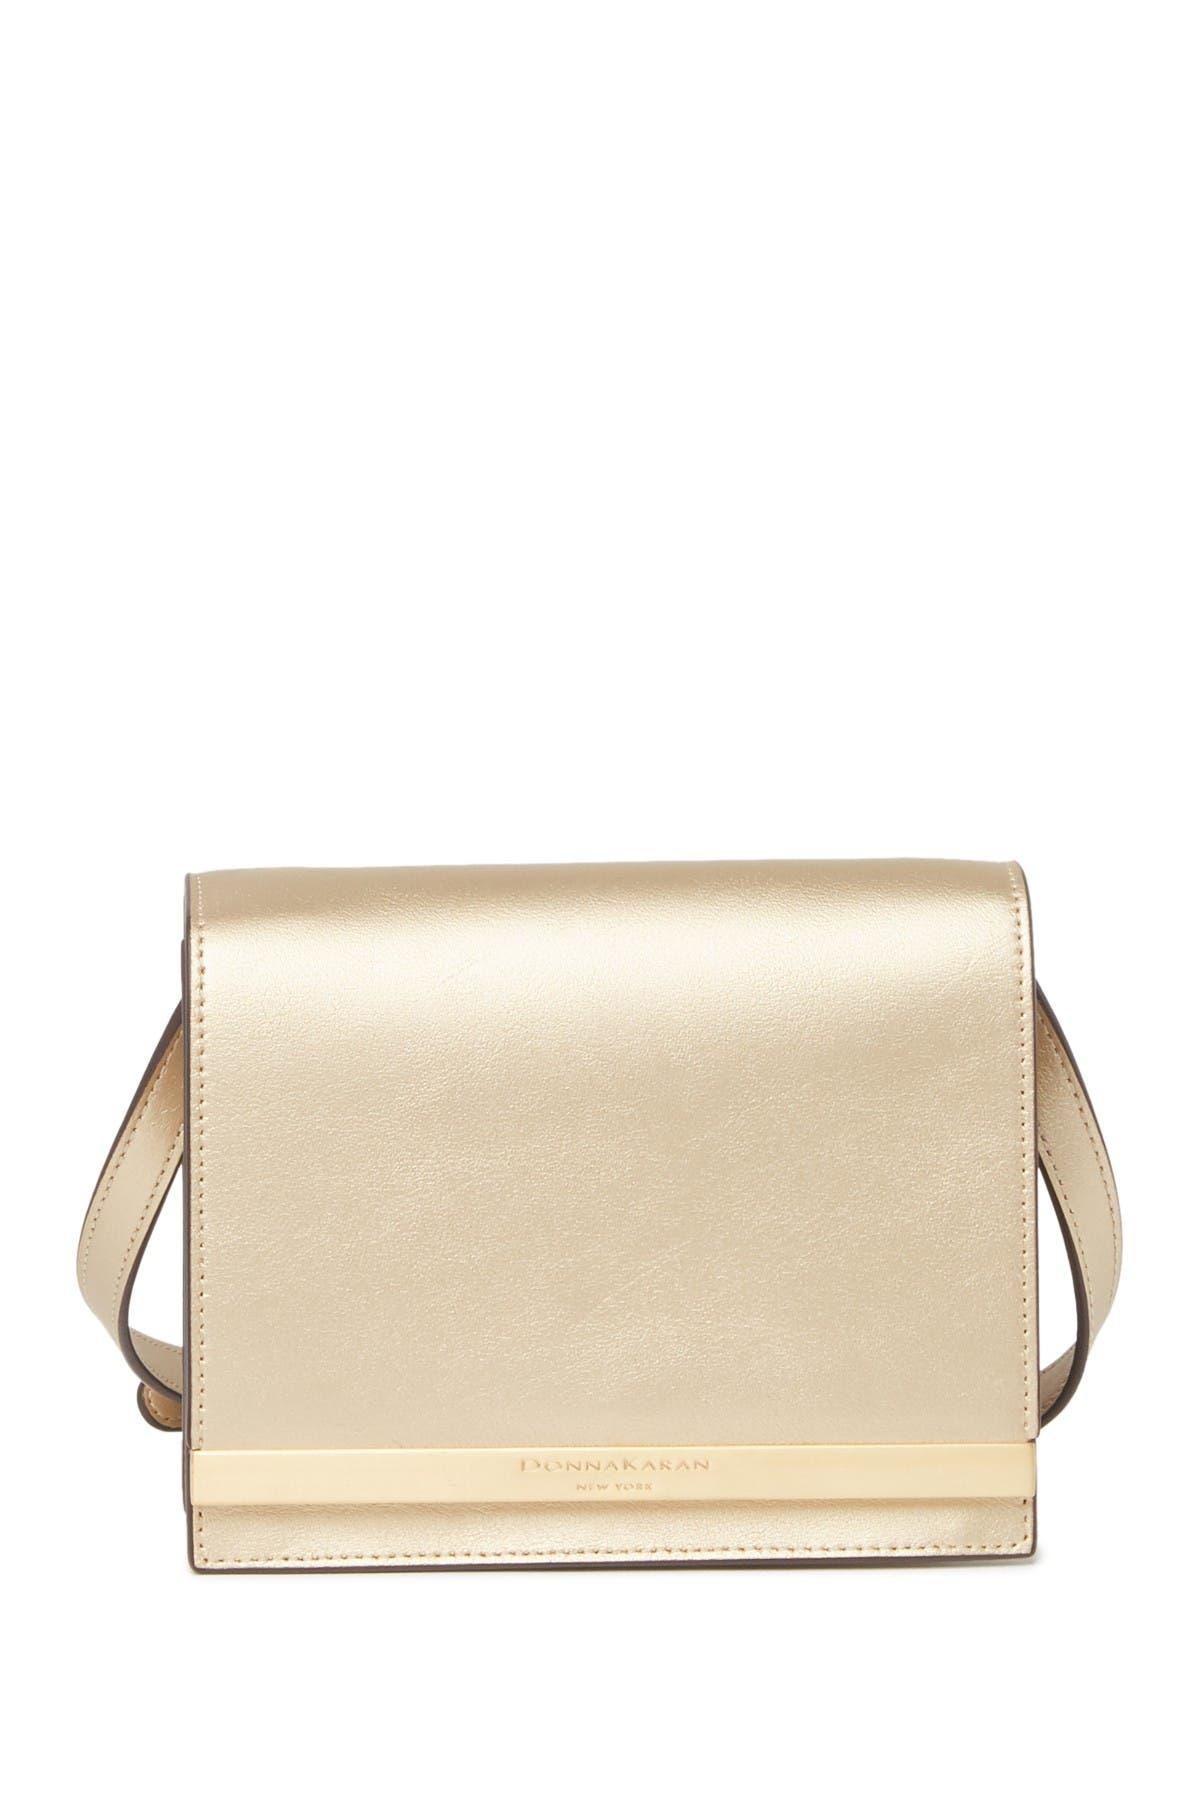 Image of Donna Karan Mally Leather Crossbody Bag